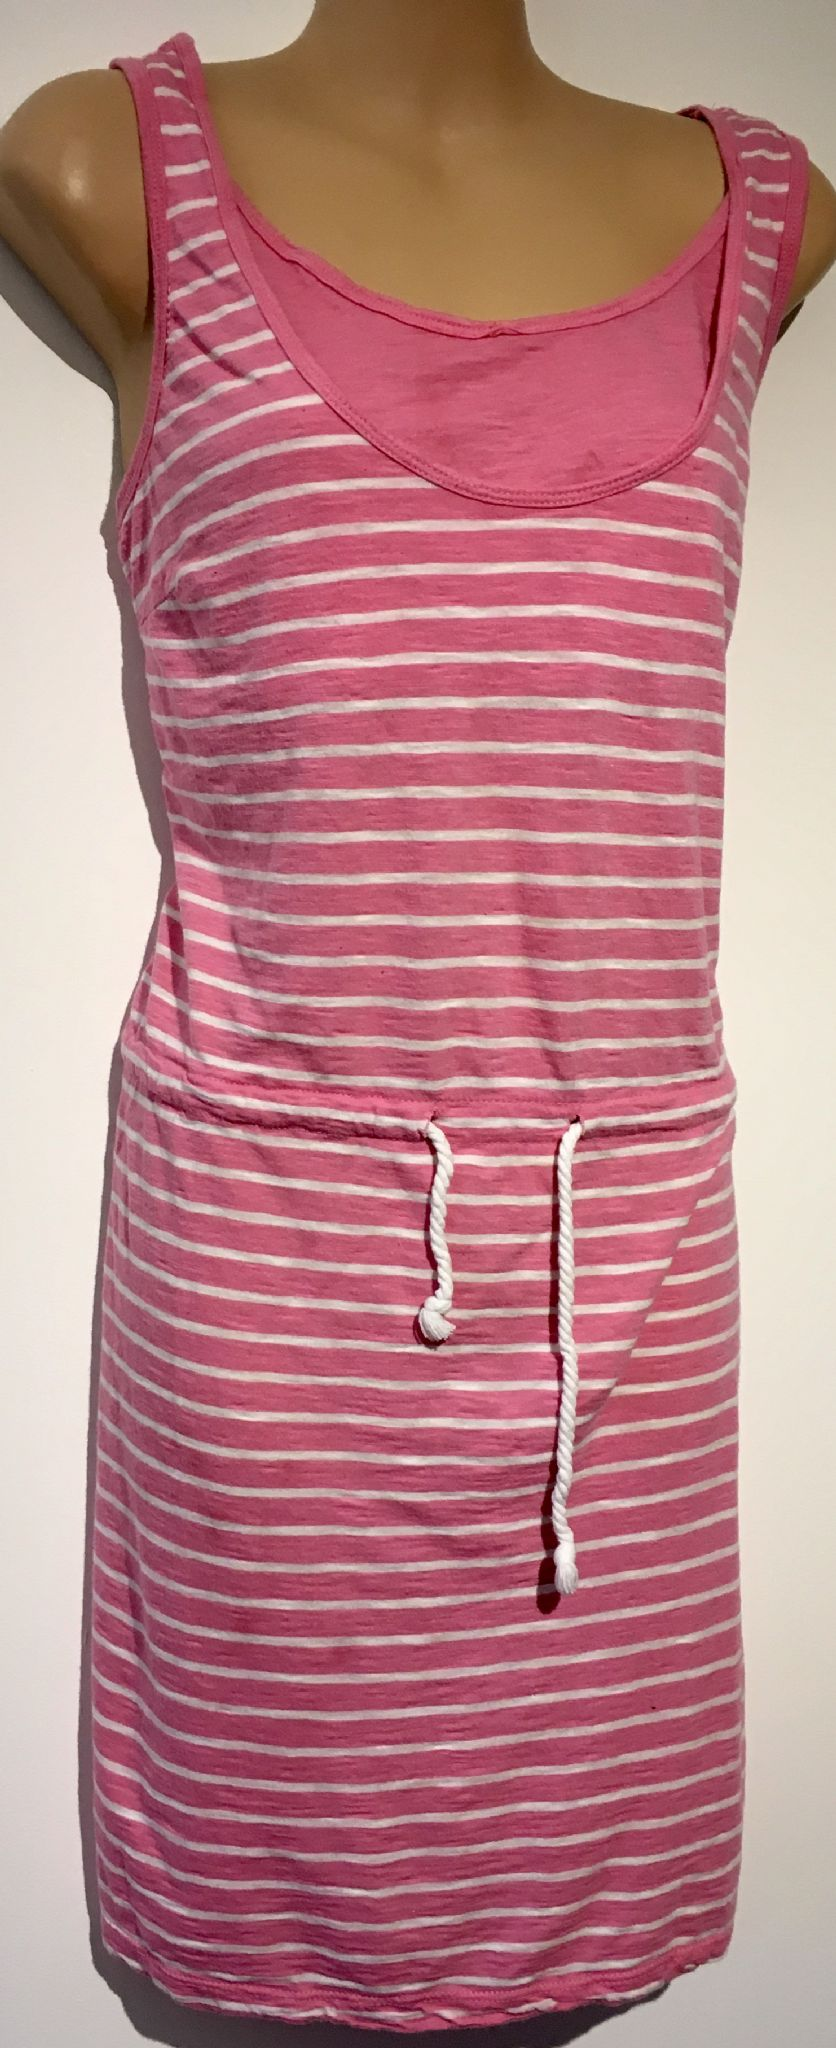 7fa30d53be71a H&M MAMA PINK STRIPE SUMMER NURSING DRESS SIZE M 12